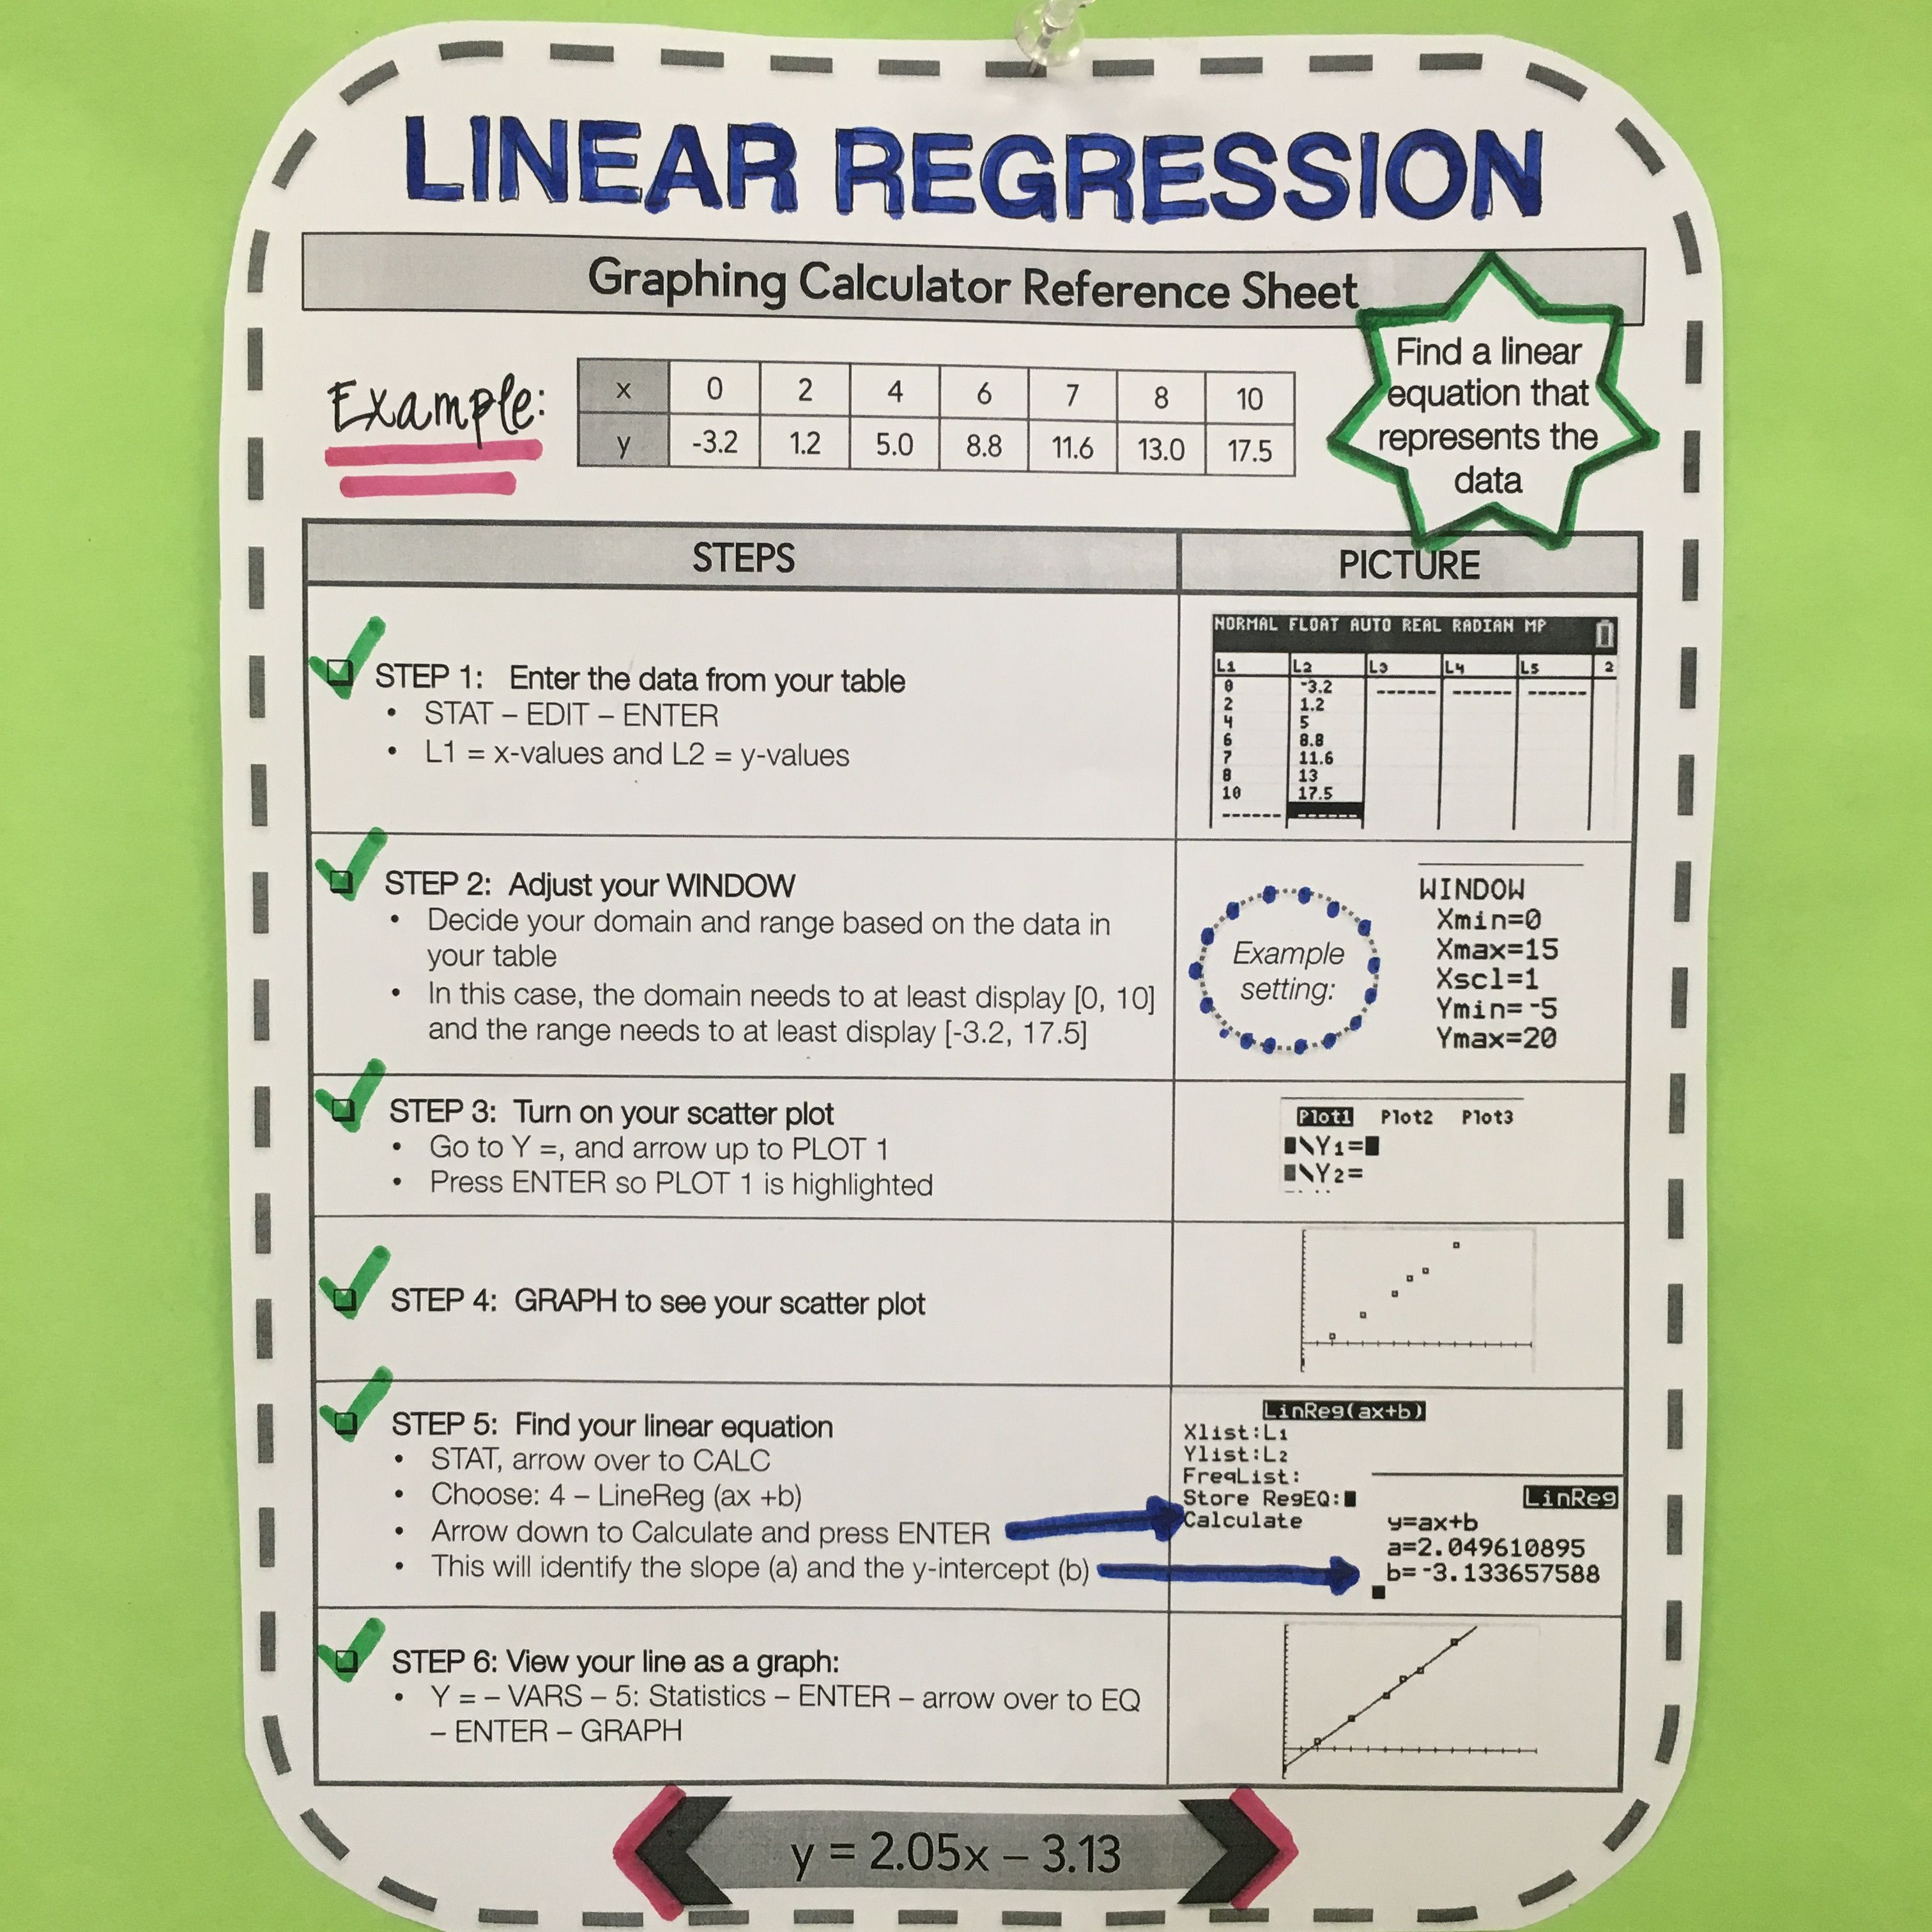 Graphing Calculator Reference Sheet On Linear Regression Clear Steps With Pictures Linear Regression Teaching Algebra Graphing Calculator